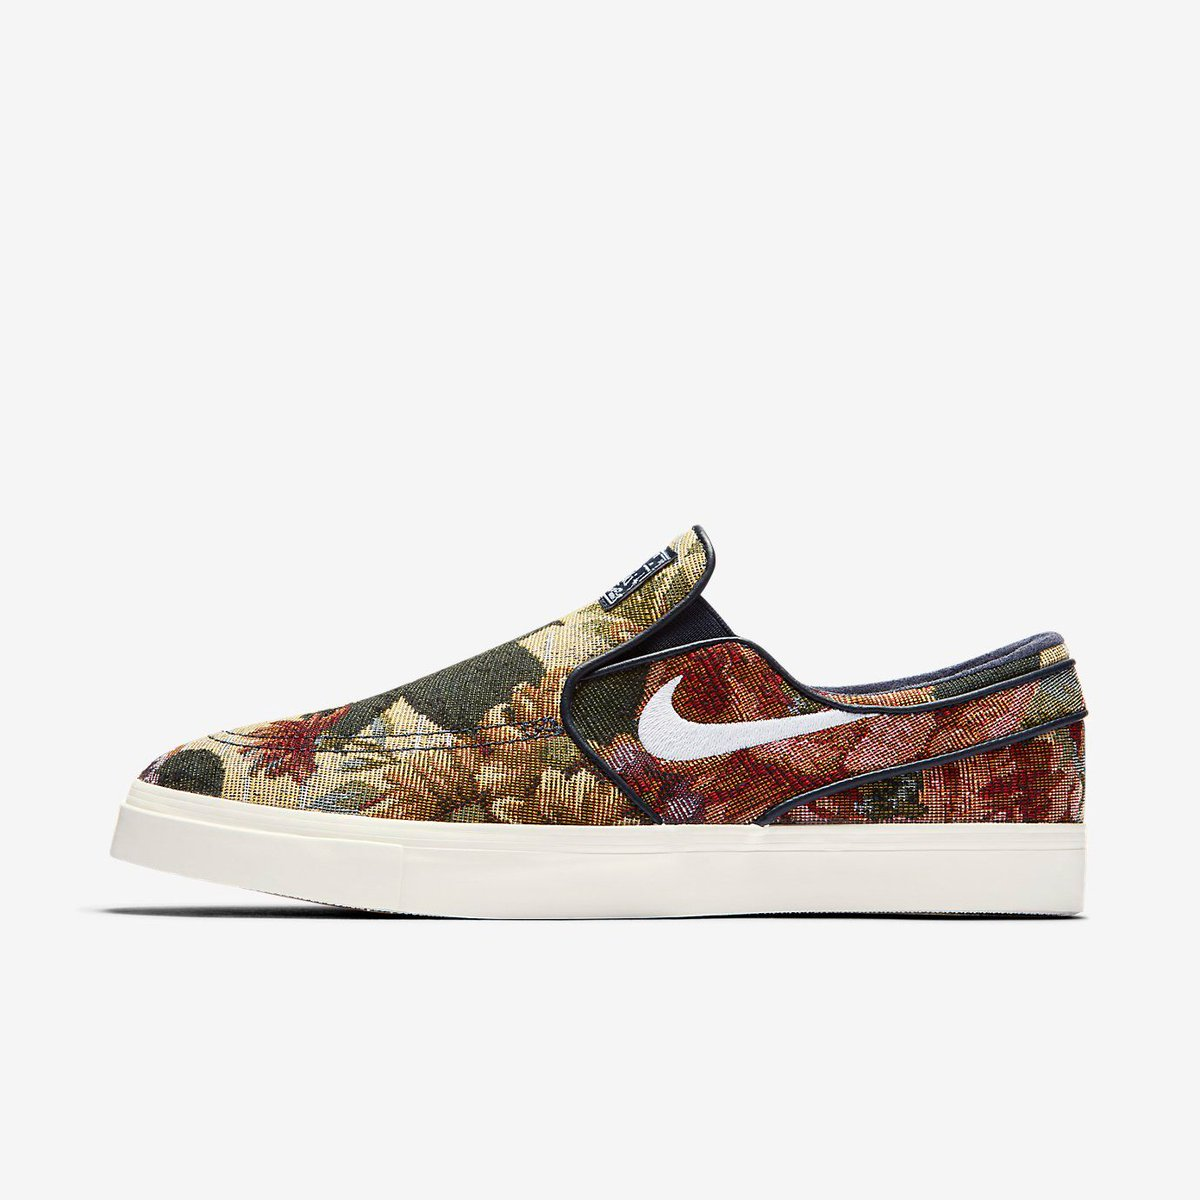 0ad7ddb09342 nike sb zoom stefan janoski slip on floral available here